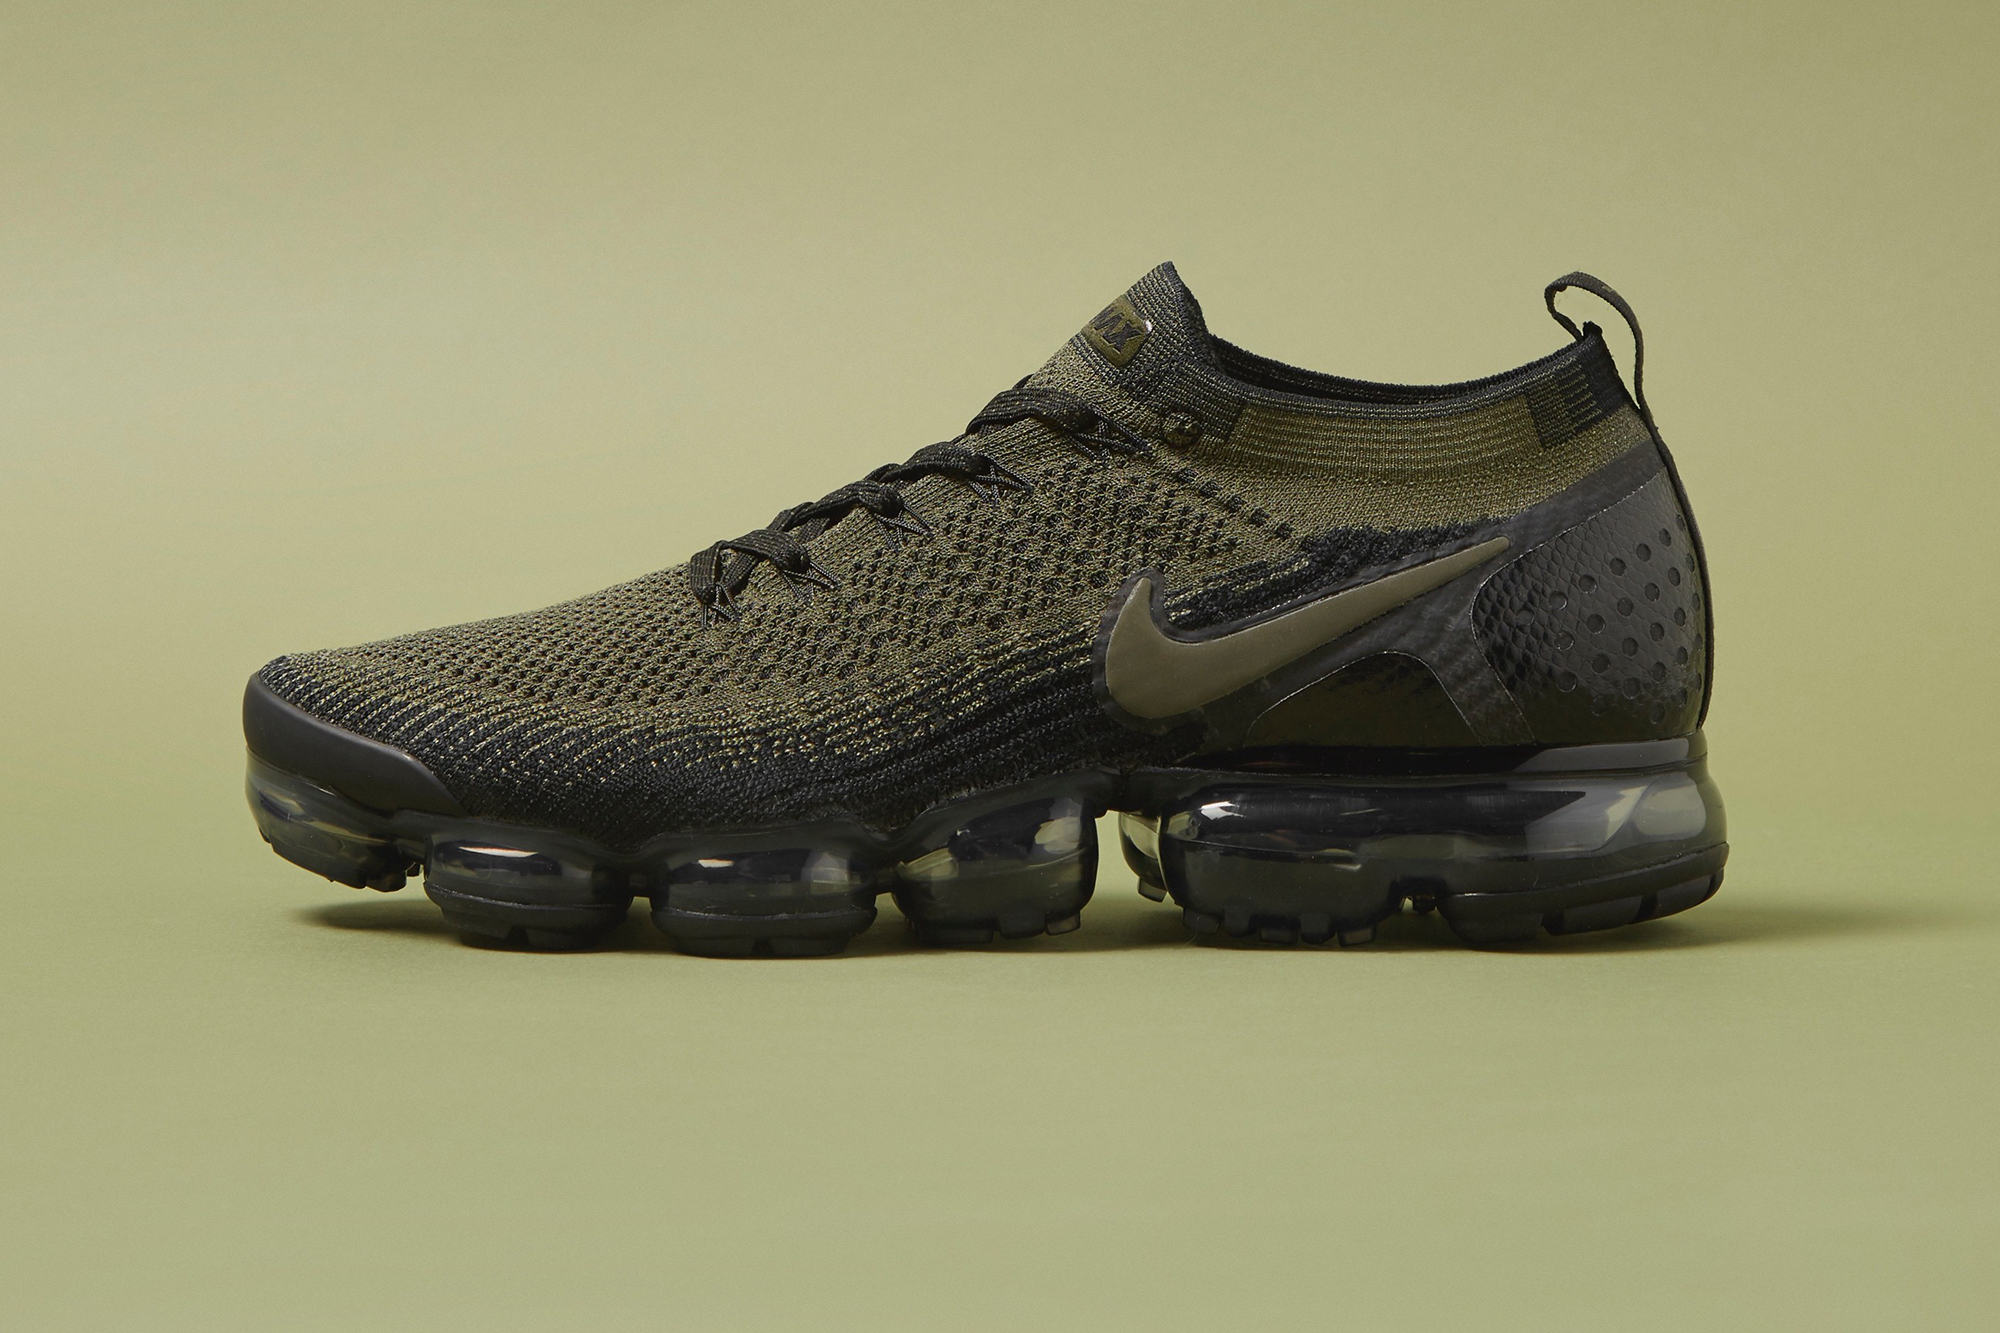 98a3fa4331c Nike Air VaporMax Animal Pack  Snake  Green and Black - size  Blog